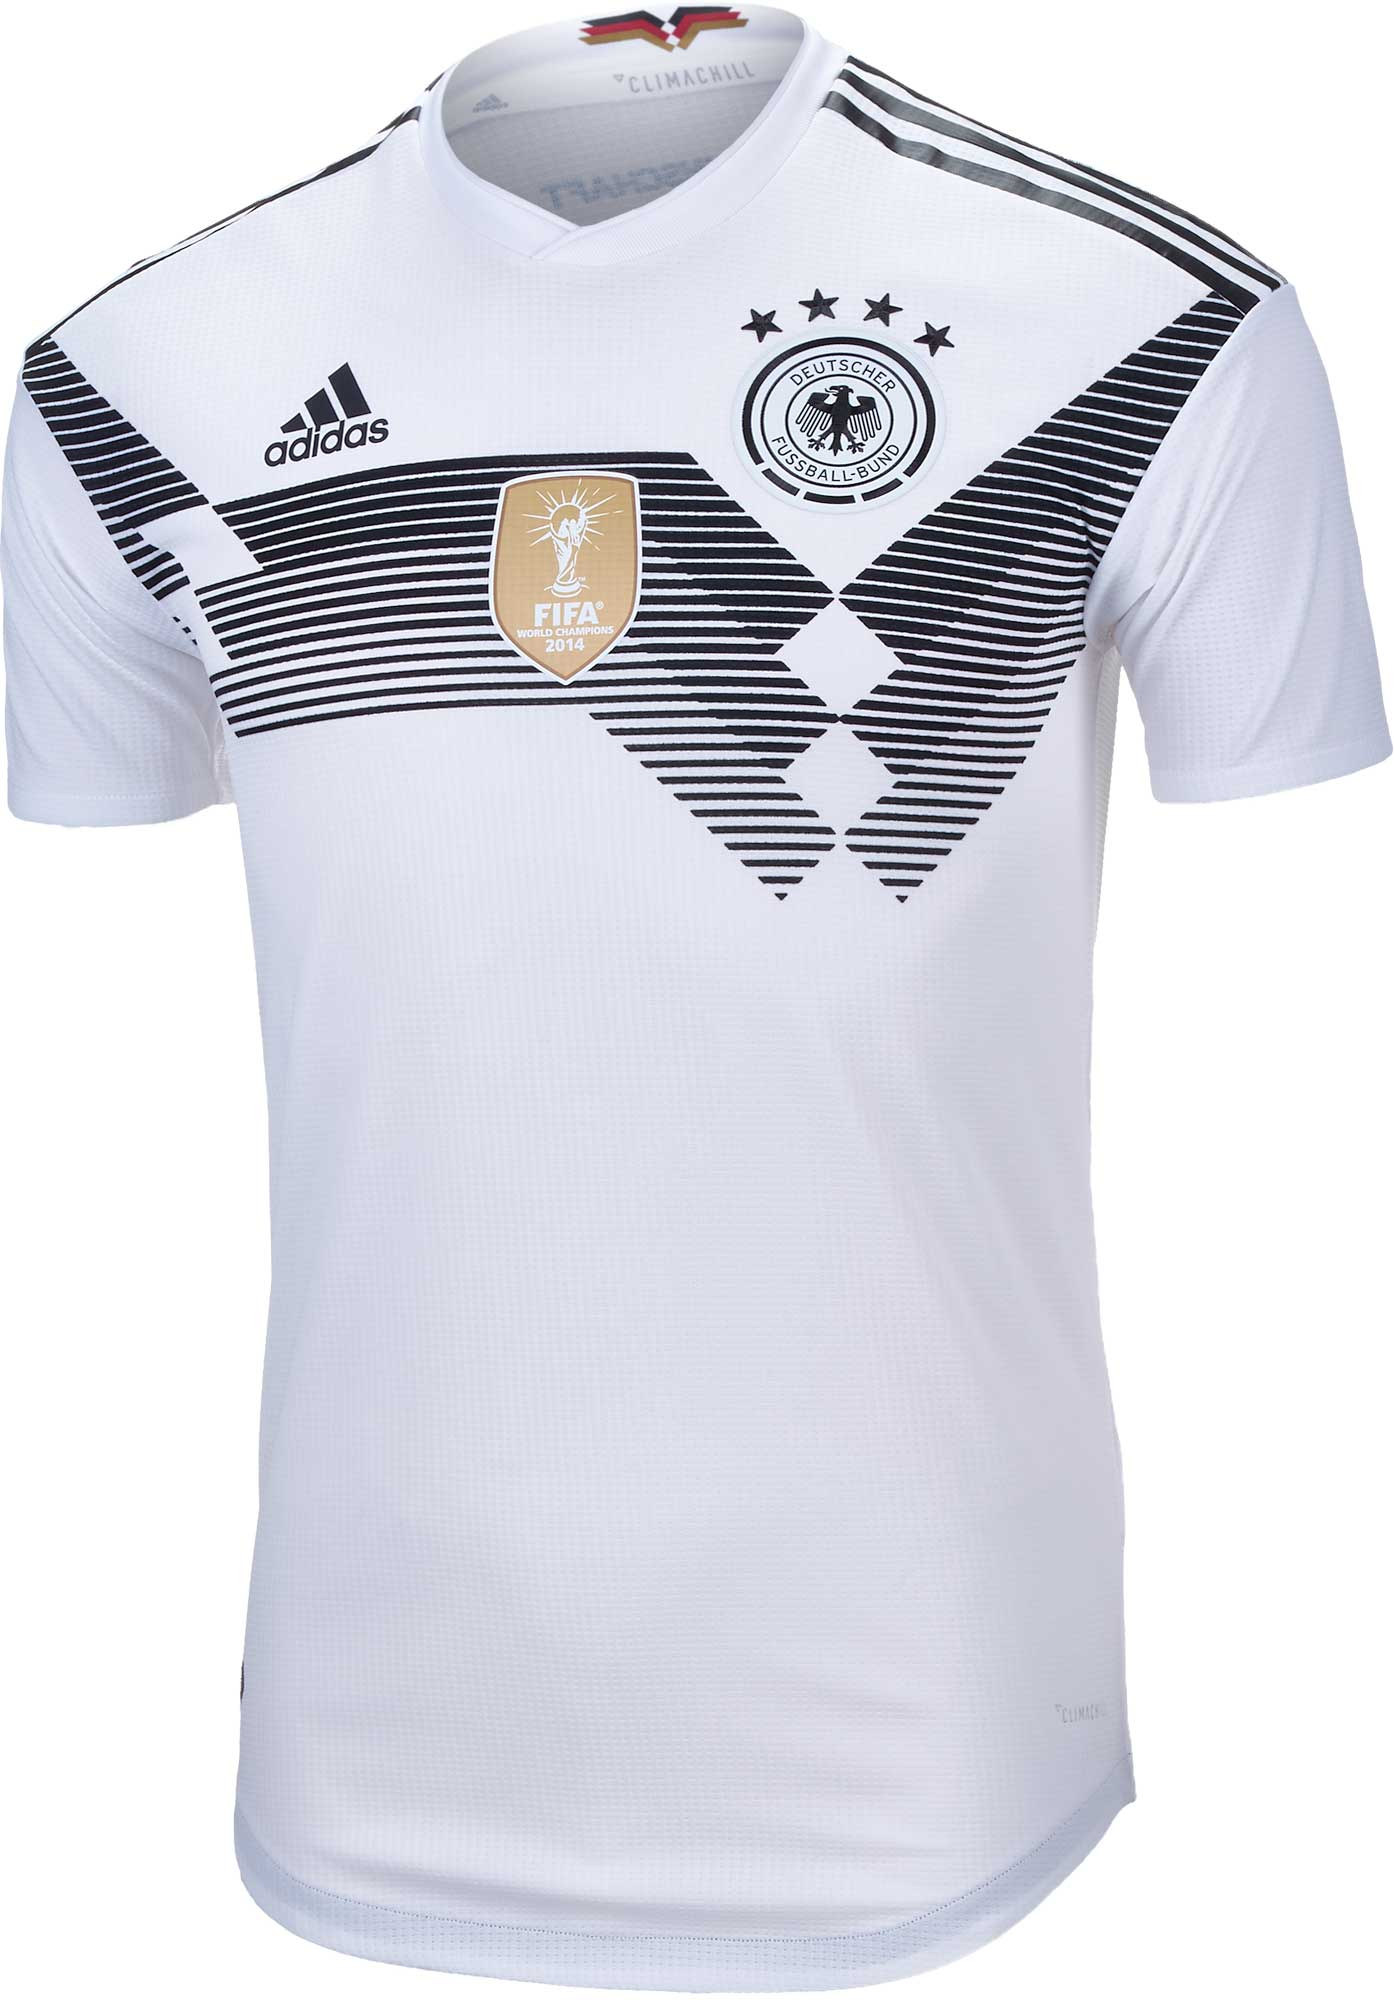 562daa533 adidas Germany Authentic Home Jersey 2018-19 - Soccer Master